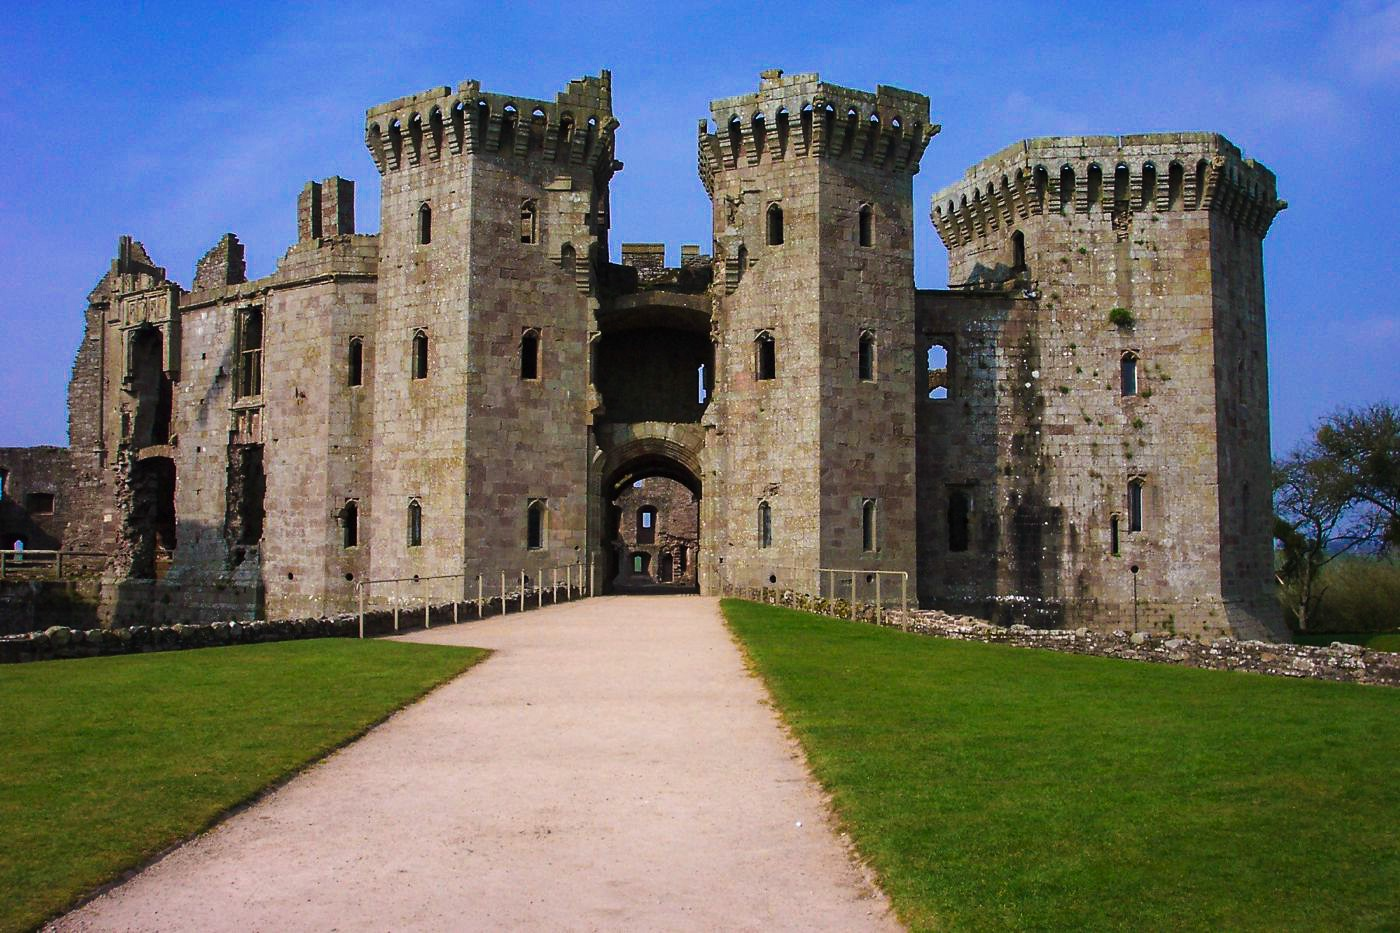 16 Fairytale Castles You Must See in Wales! Beaumaris Castle Caernarfon Castle Caerphilly Castle Carreg Cennen Castle Castell Coch Chepstow Castle Conwy Castle Criccieth Castle Denbigh Castle Dolwyddelan Castle Harlech Castle Kidwelly Castle Raglan Castle St Davids Bishop's Palace Tintern Abbey Tretower Court & Castle Weobley Castle (13)